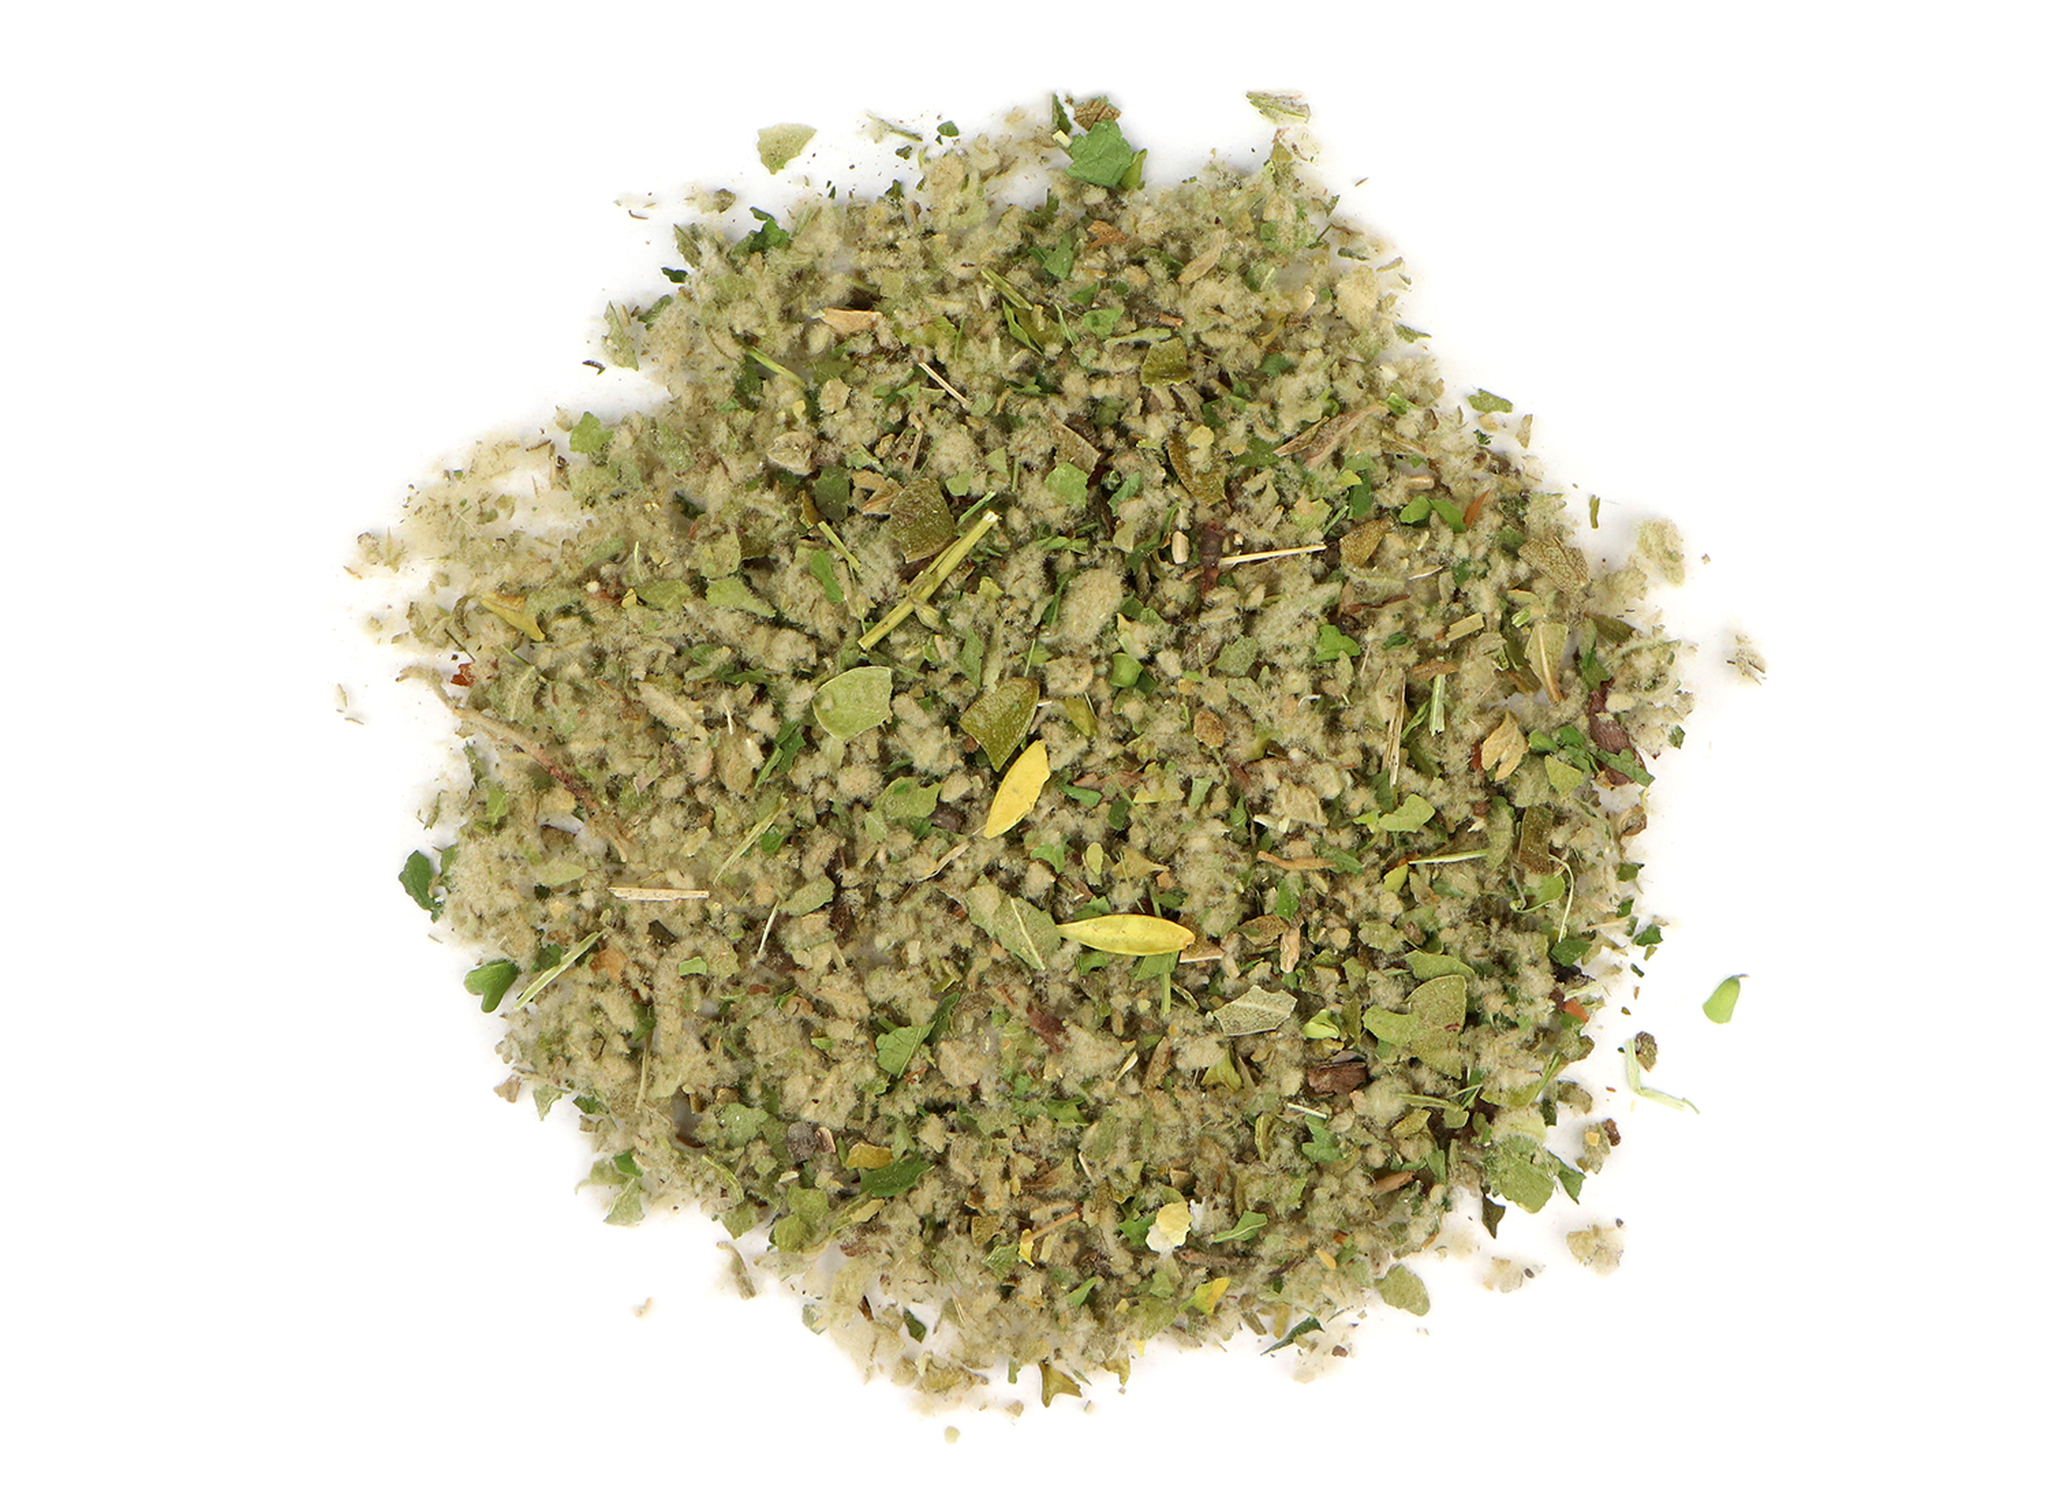 purchase bulk wholesale herbal smoke products